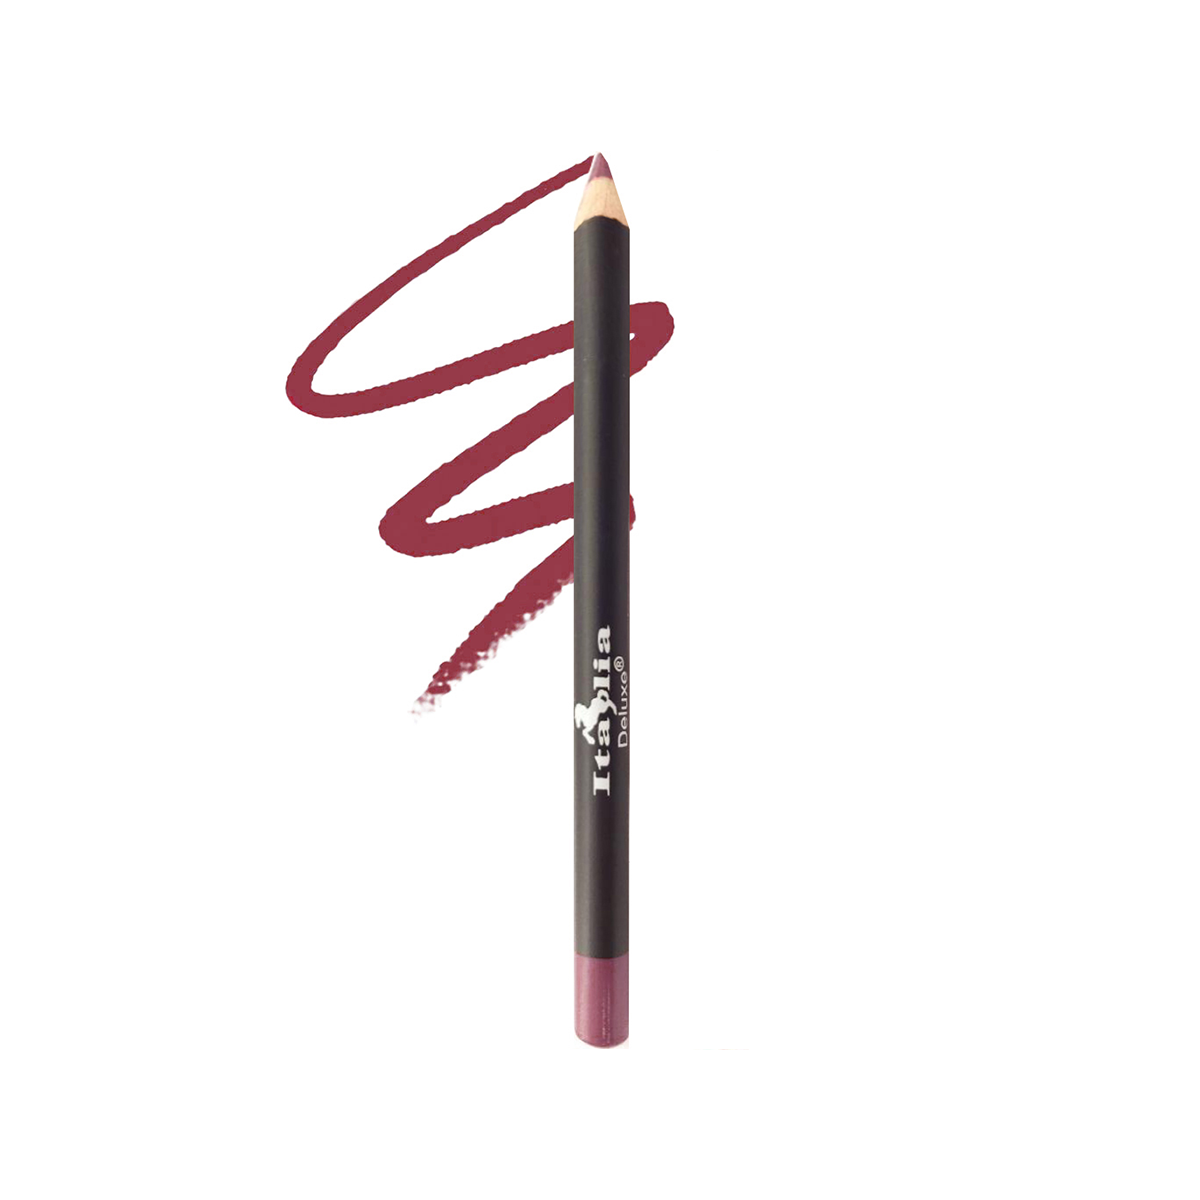 UltraFine Lip Liner Short Pencil